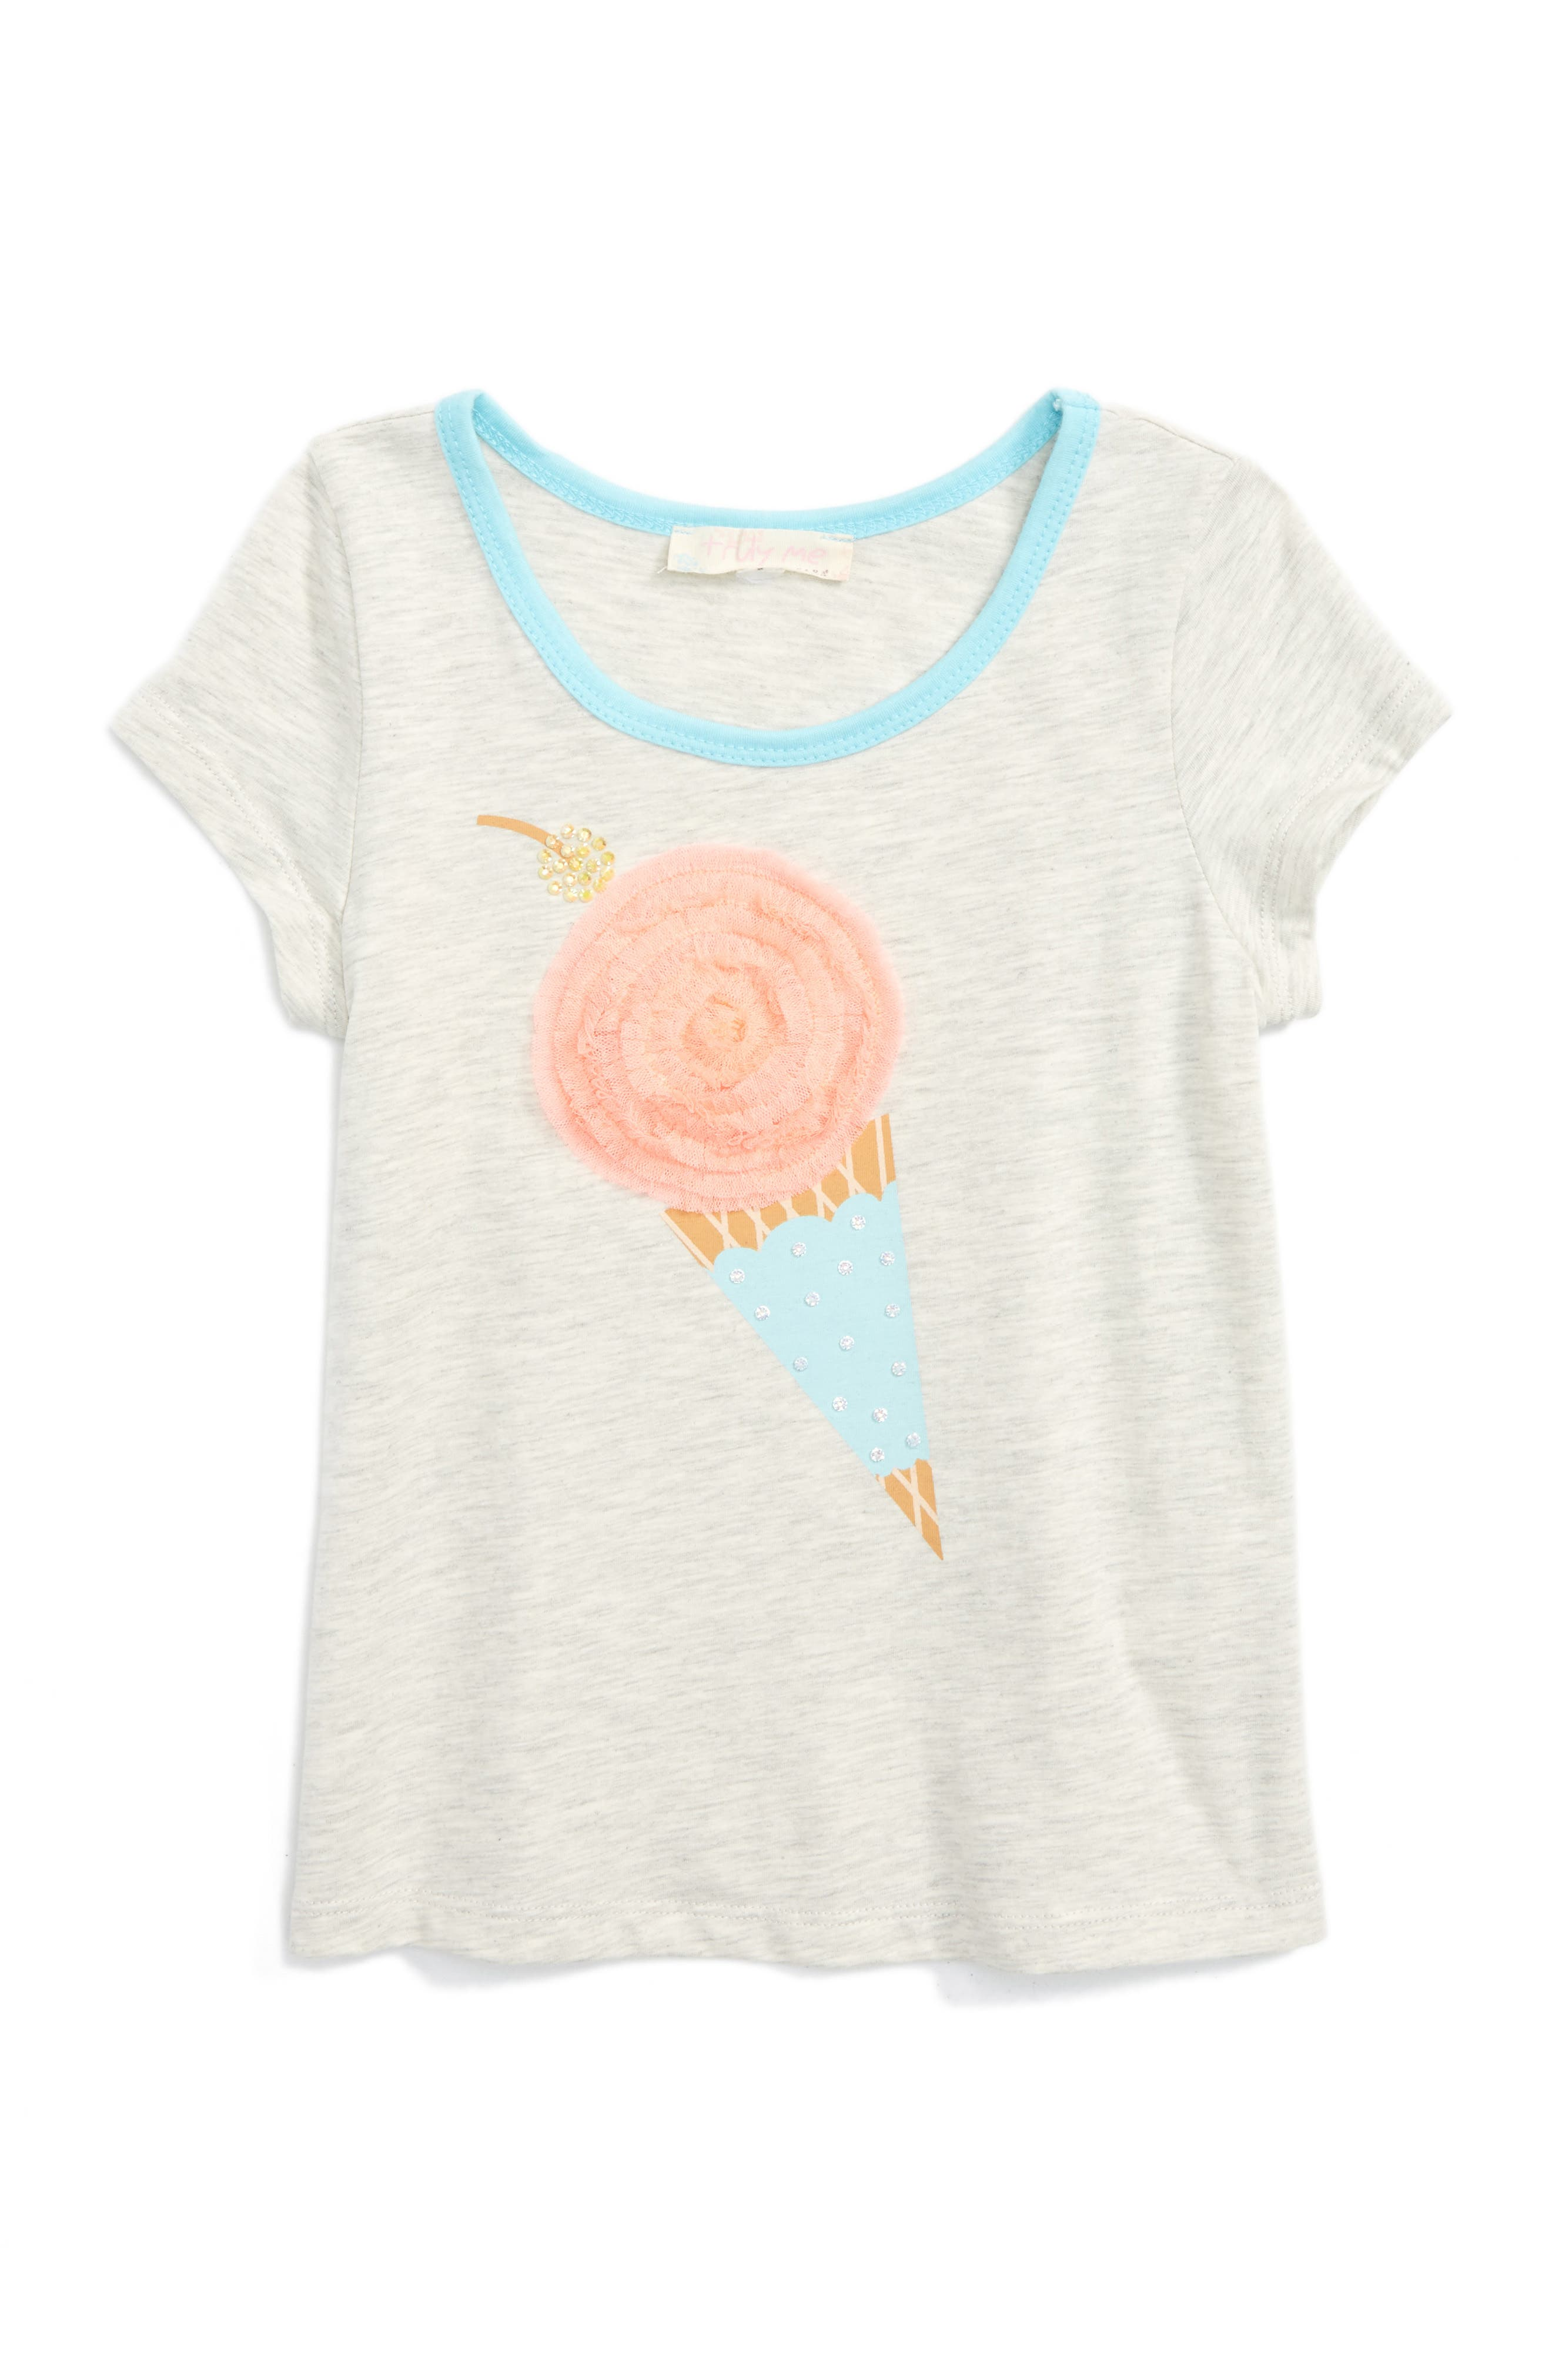 Truly Me Embellished Graphic Tee (Toddler Girls & Little Girls)